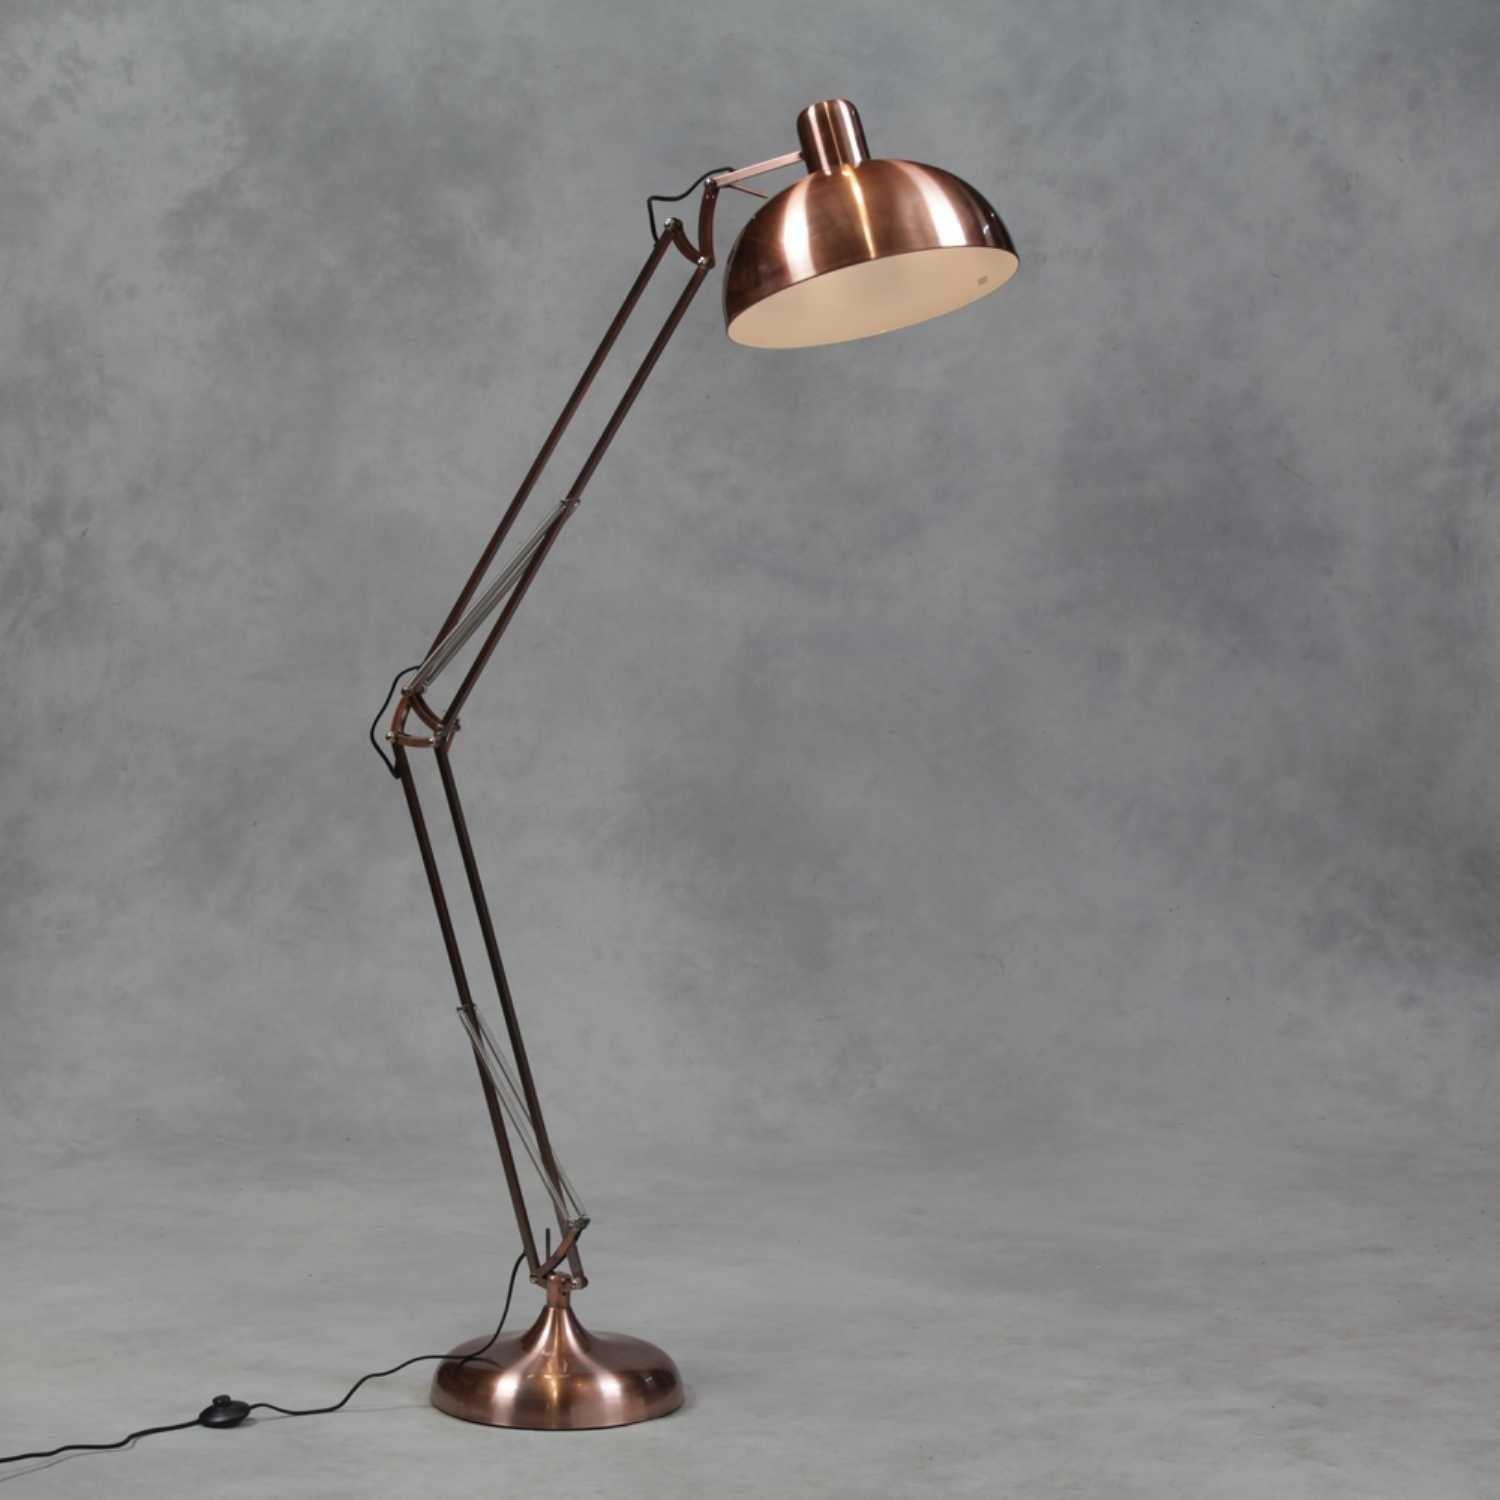 Vintage Copper Large Classic Desk Style Angled Floor Lamp